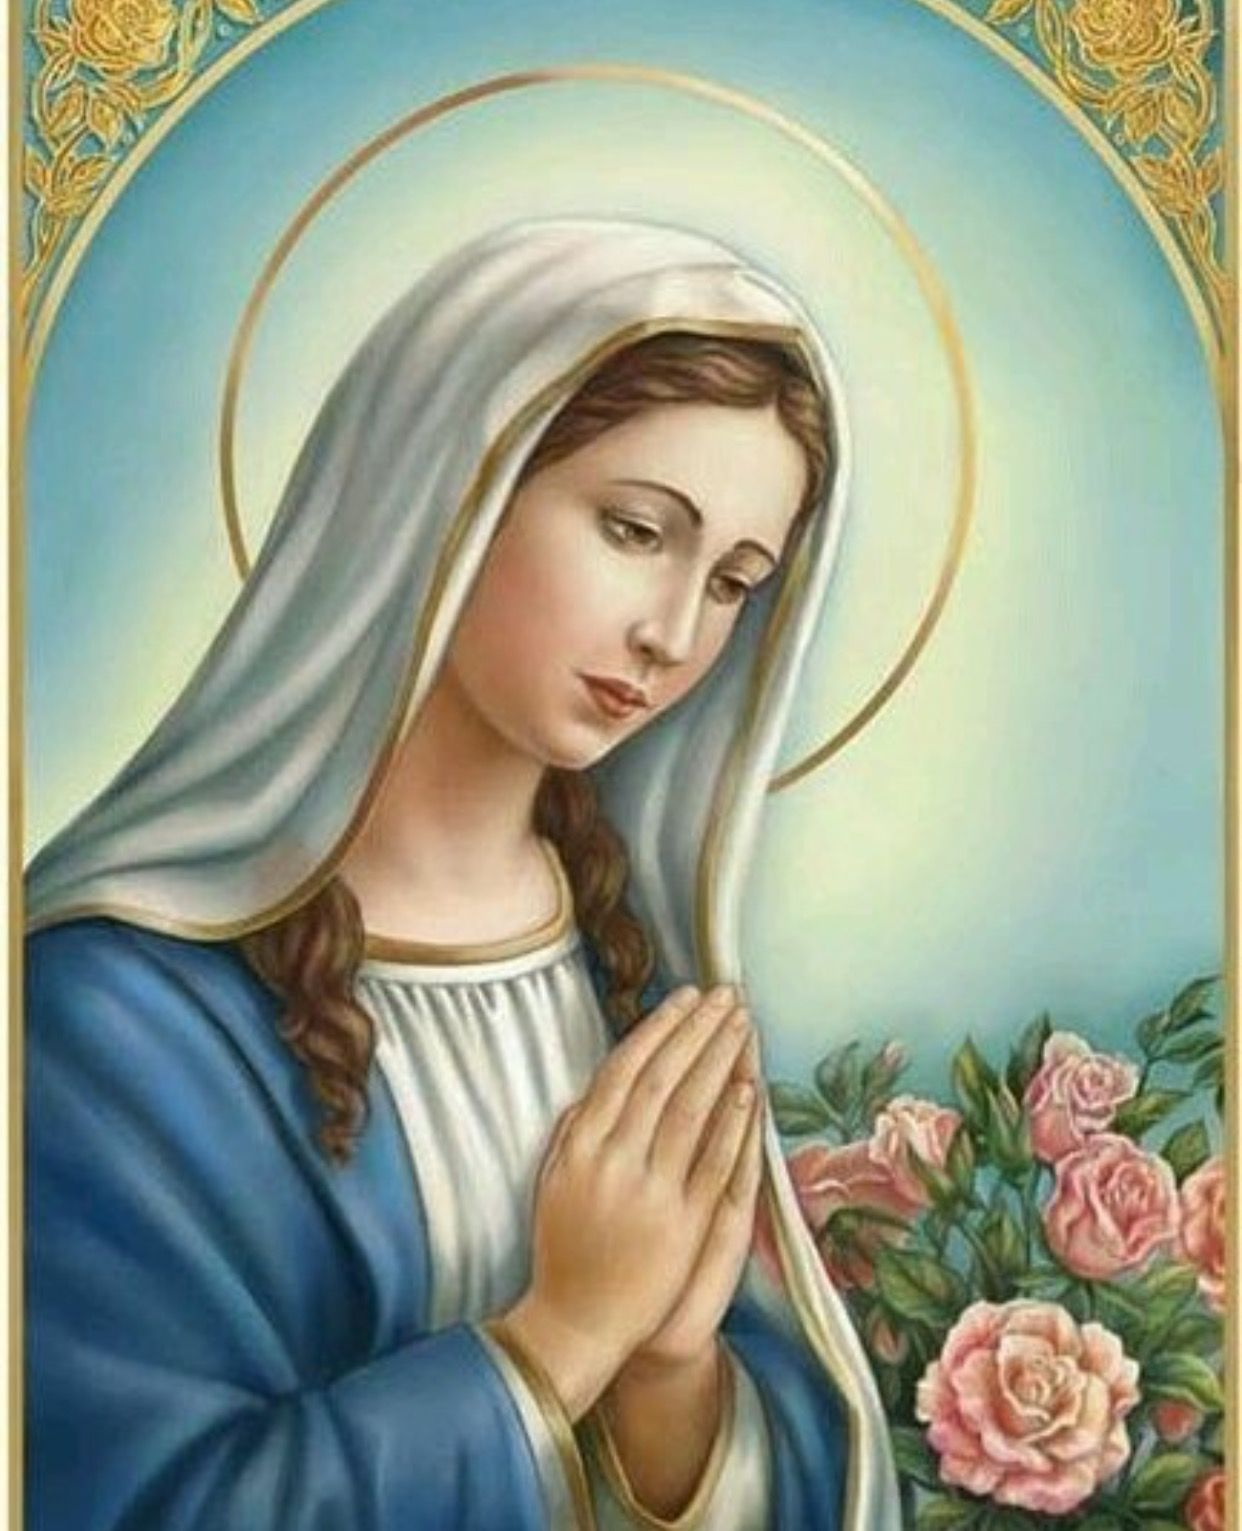 Theological meaning of marys virginity